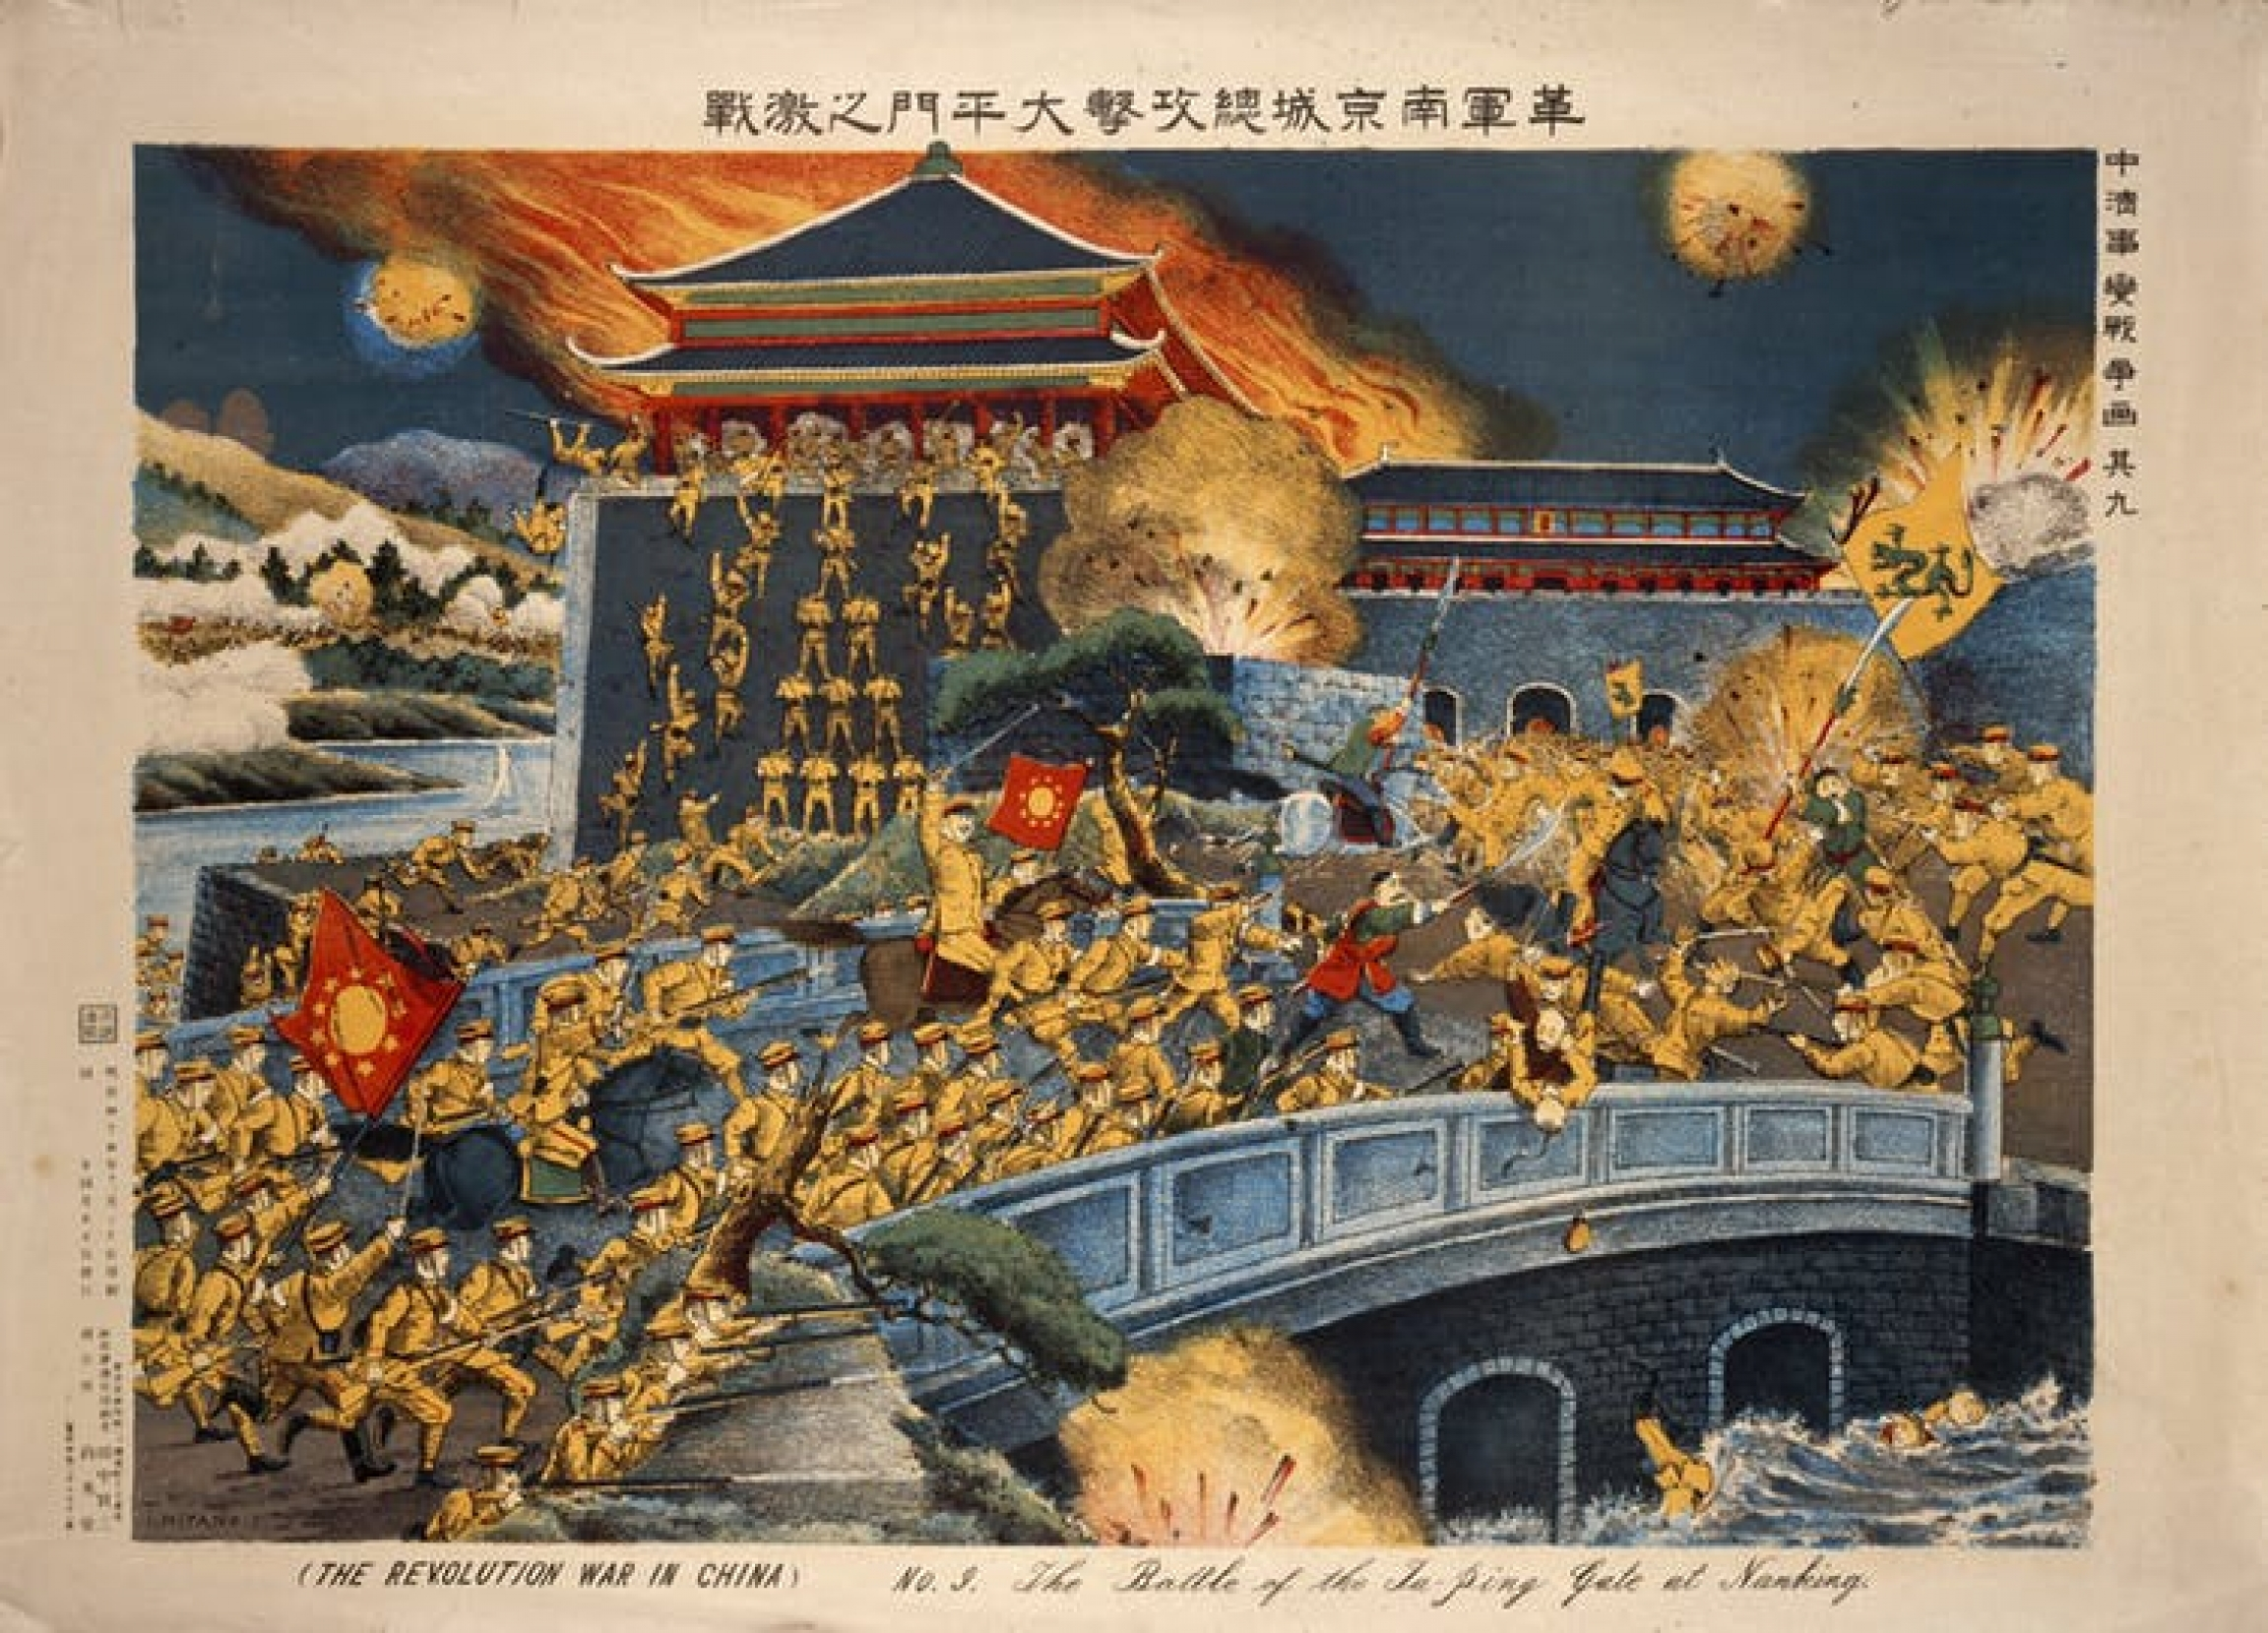 A painting of a revolution in China.